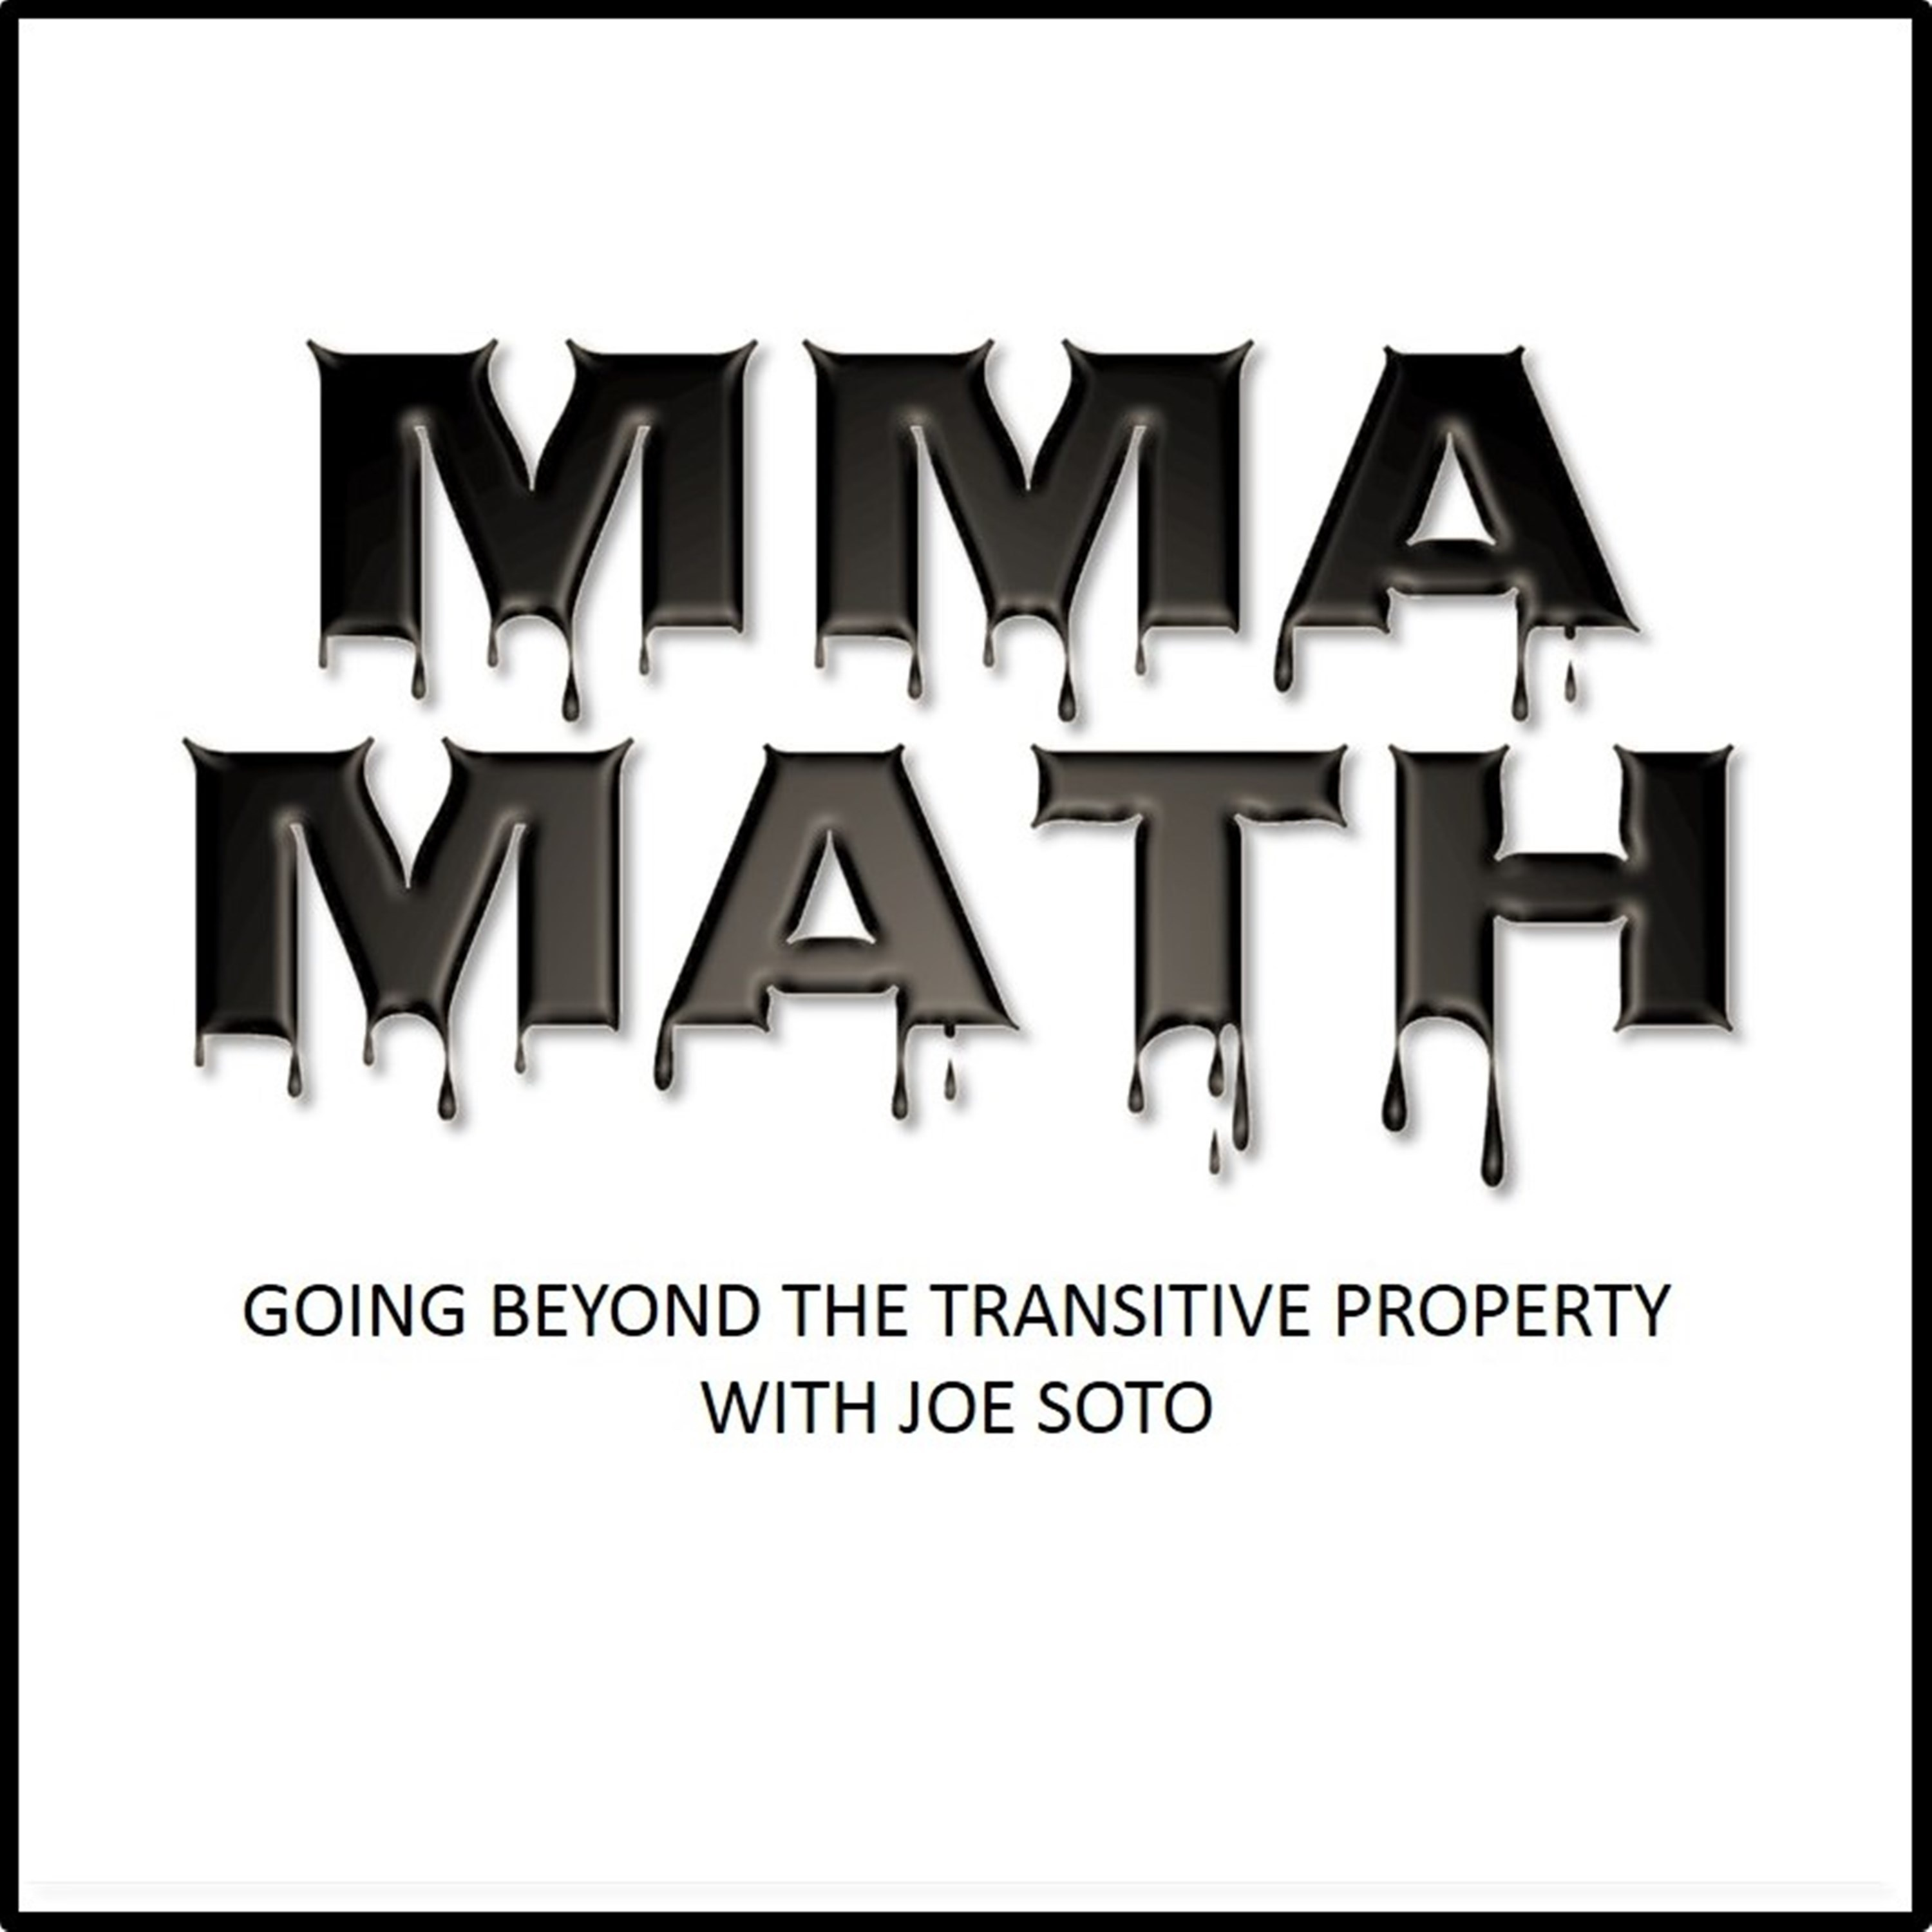 Episode 49: The Main Event, Nate Diaz